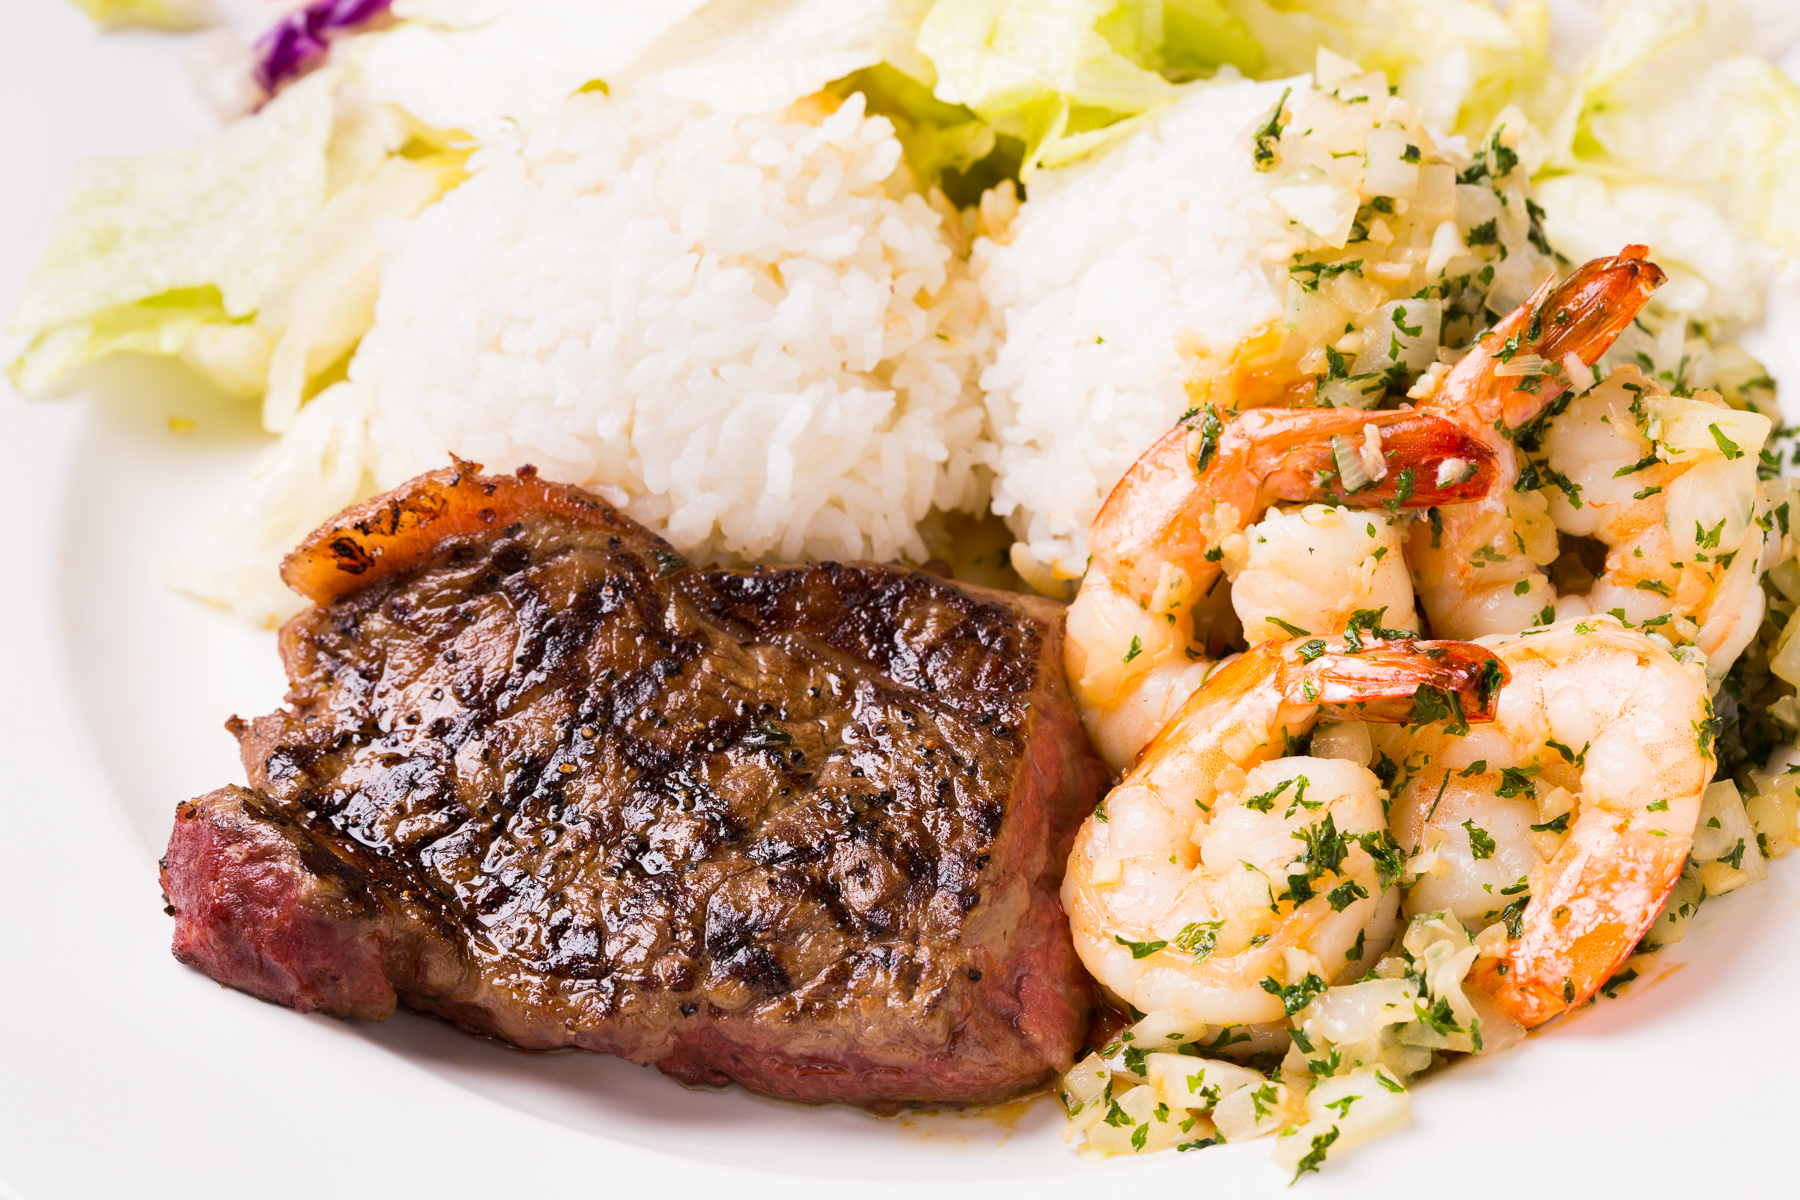 cs-20_halfSteak&shrimps